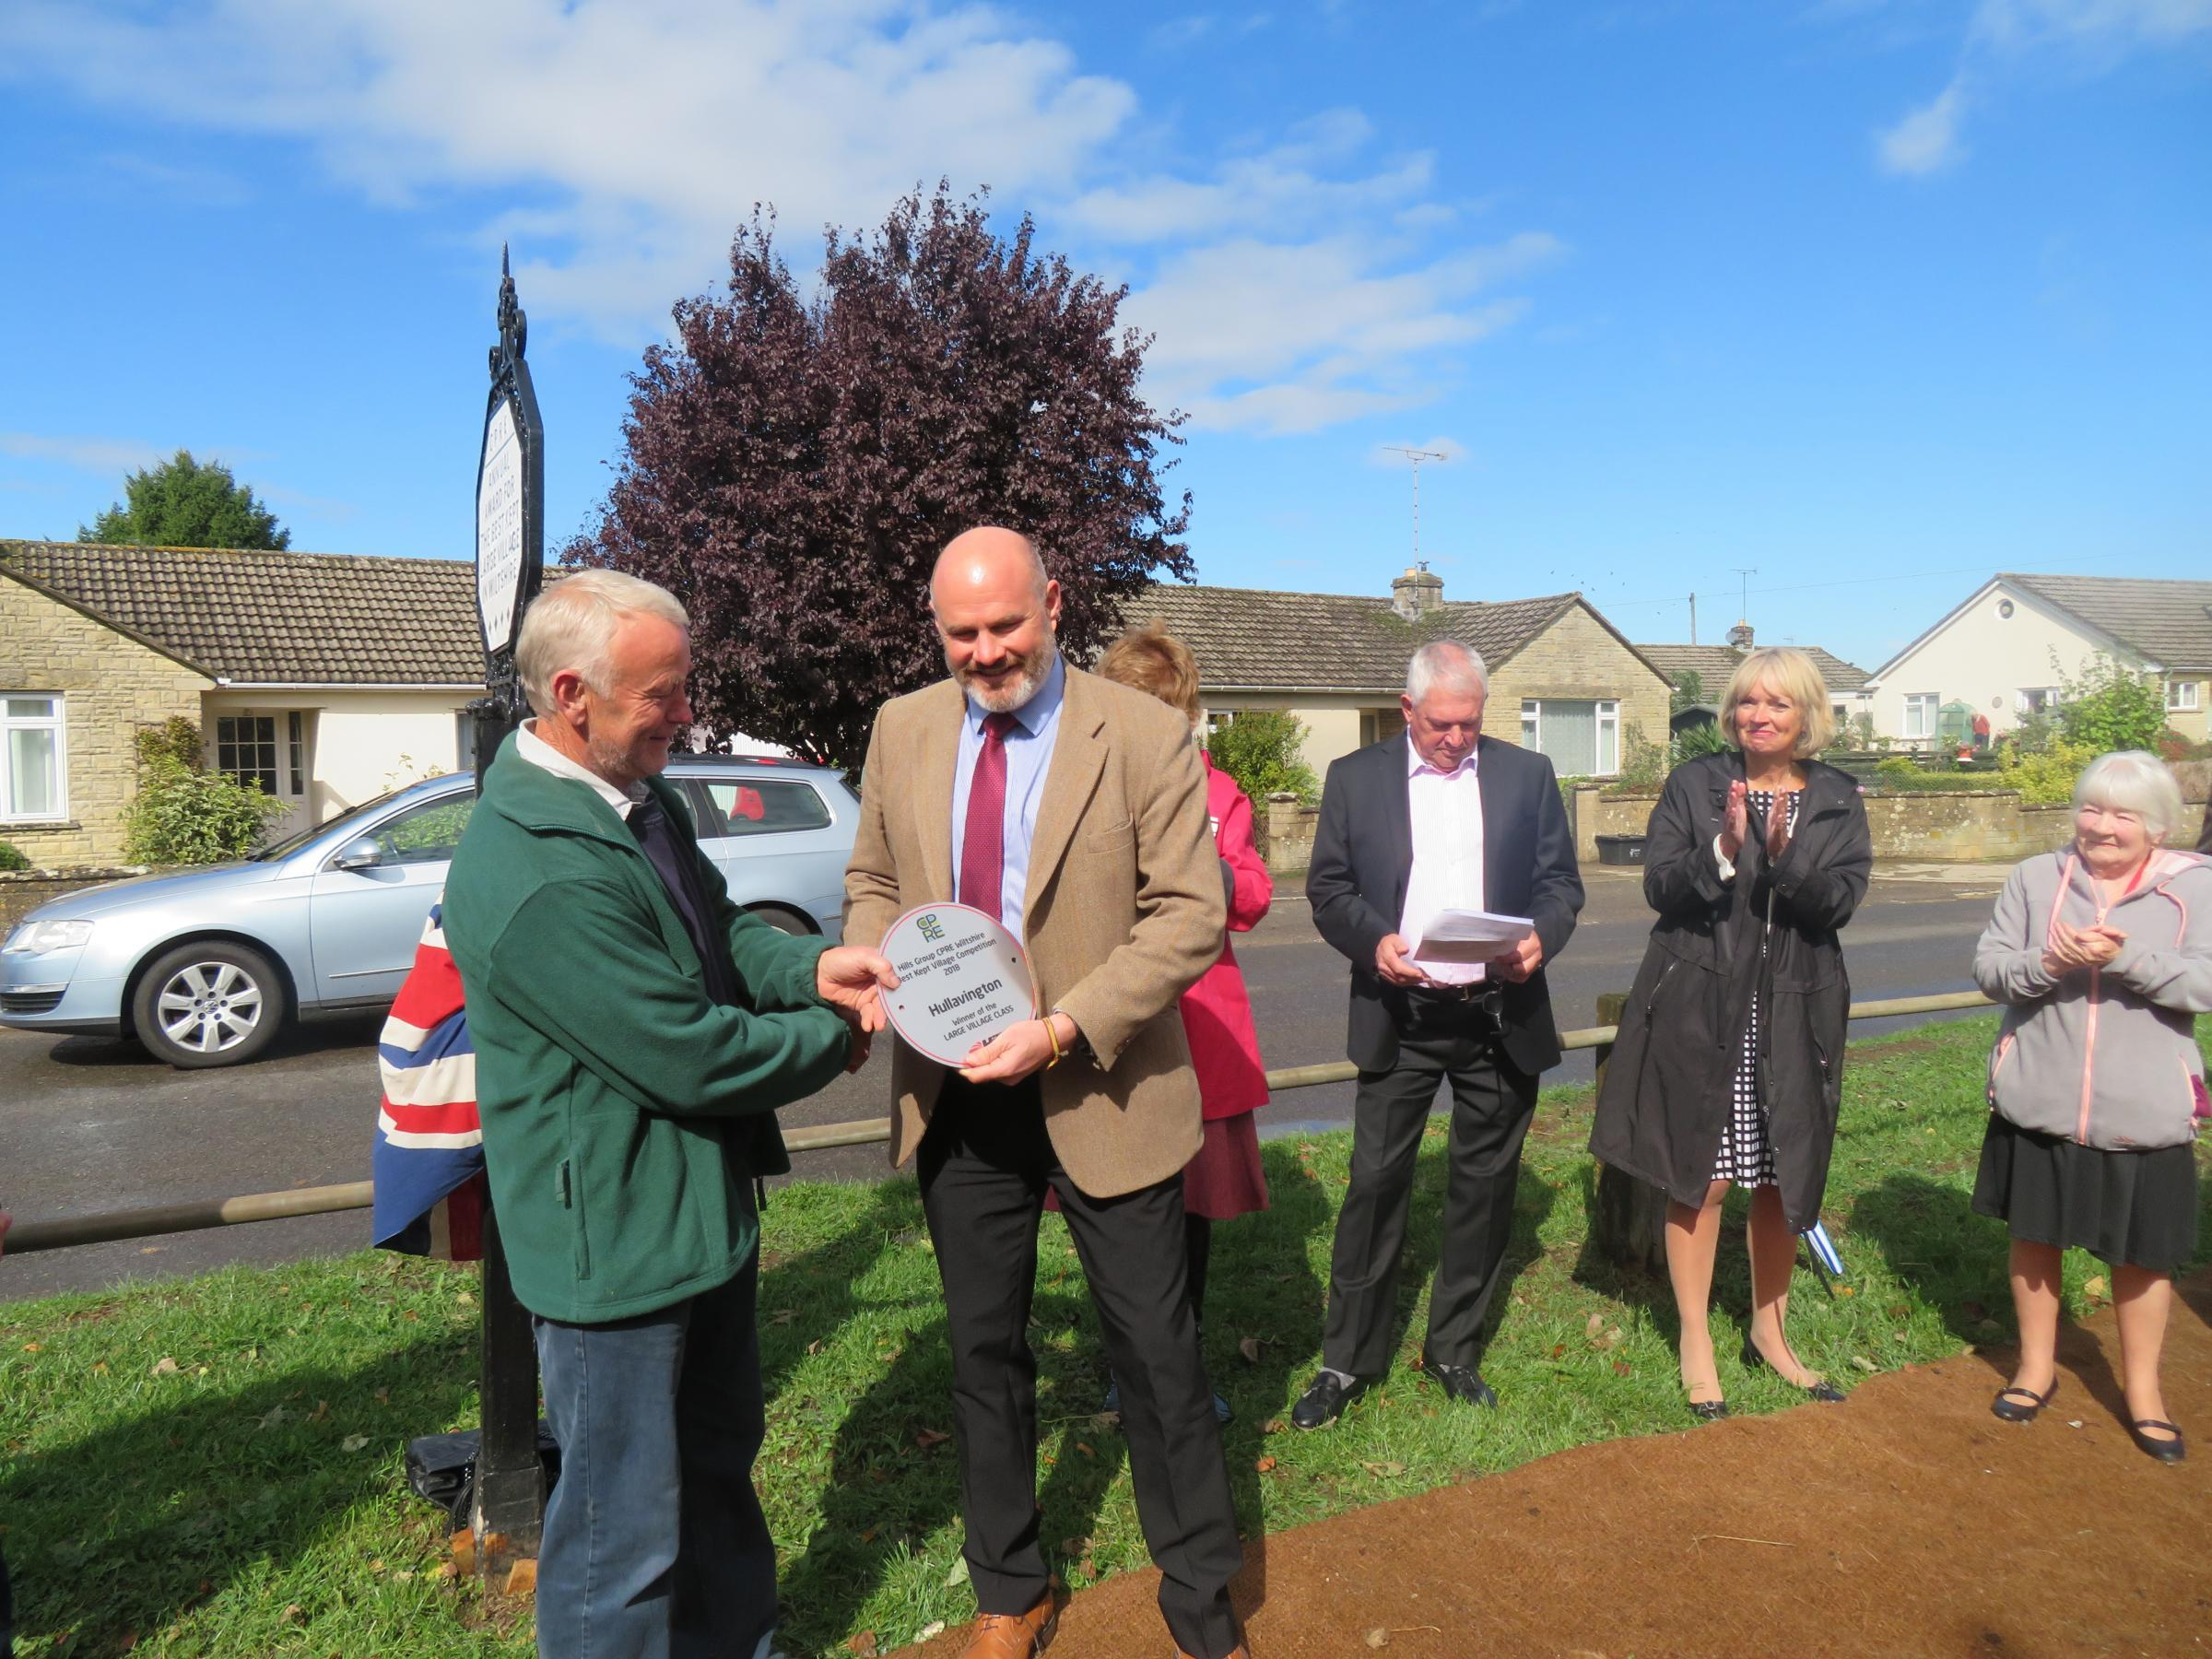 Mike Hill, Chief Executive of The Hills Group, presents their plaque to volunteer odd job man and parish councillor Hank Slater